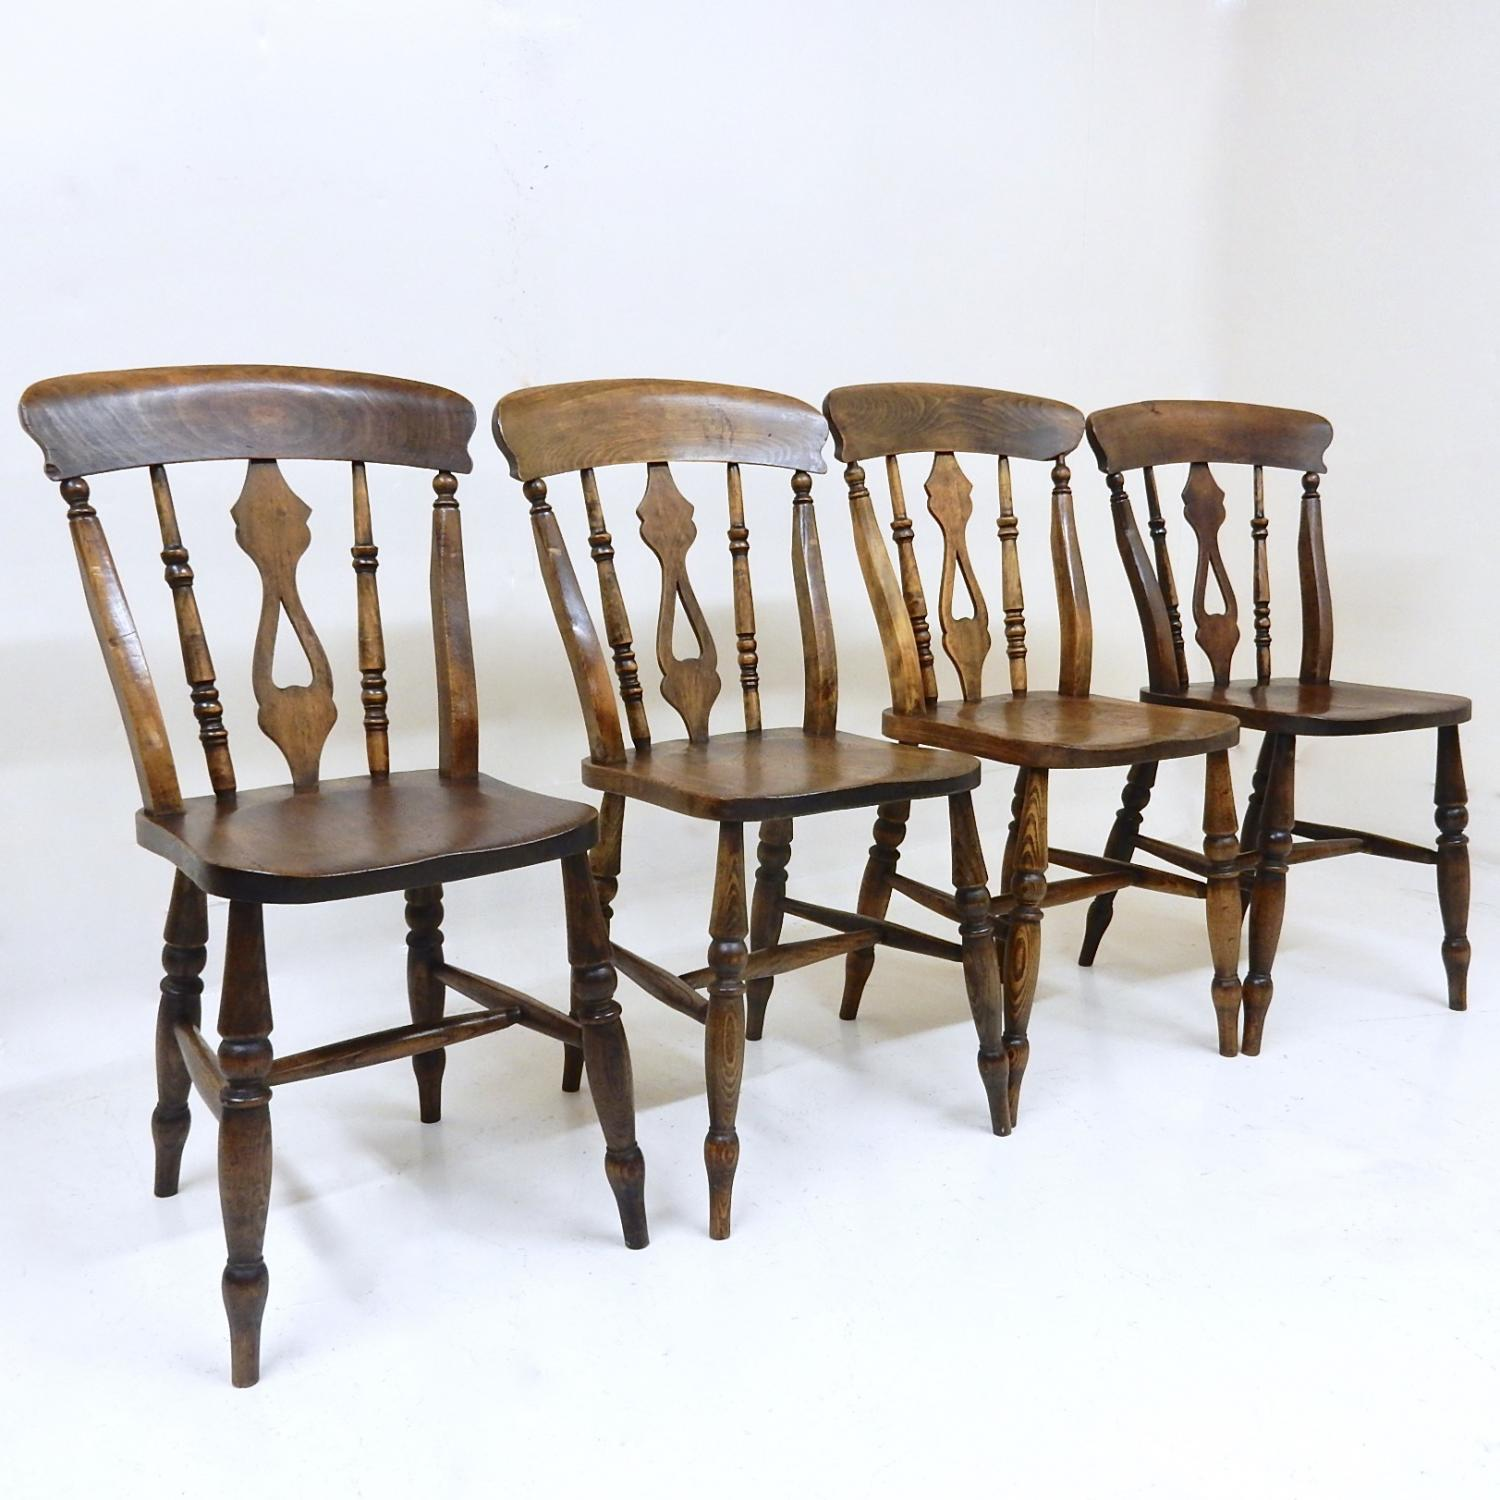 Antique Windsor Chairs Dining: Antique Windsor Kitchen Dining Chairs In Tables